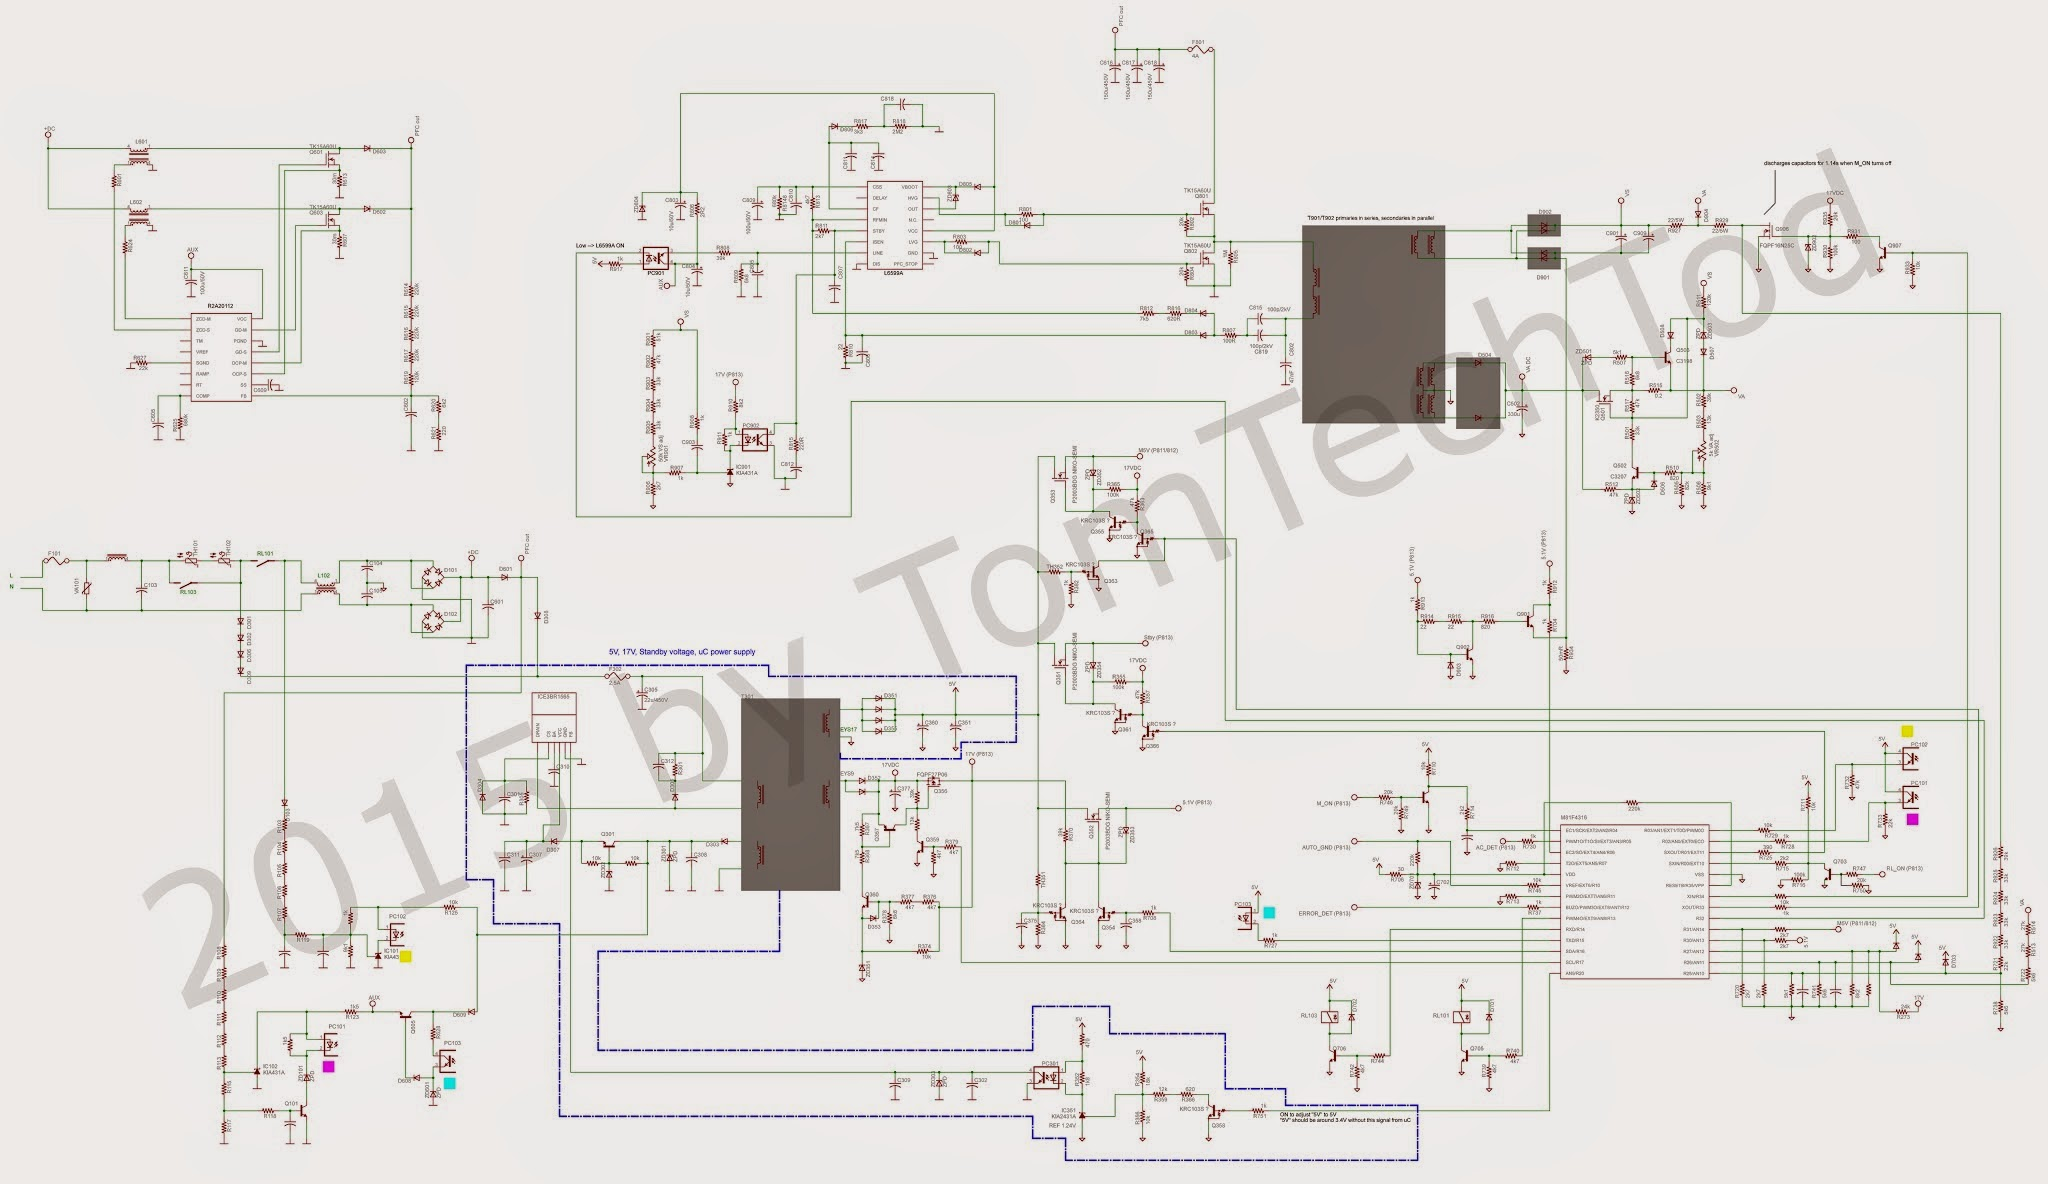 Plasma Tv Block Diagram Opinions About Wiring Toshiba Diagrams Electronics Repairs Lg Psu Board Eay60968801 Repair Rh Tomtechtodrepair Blogspot Com Samsung Smart